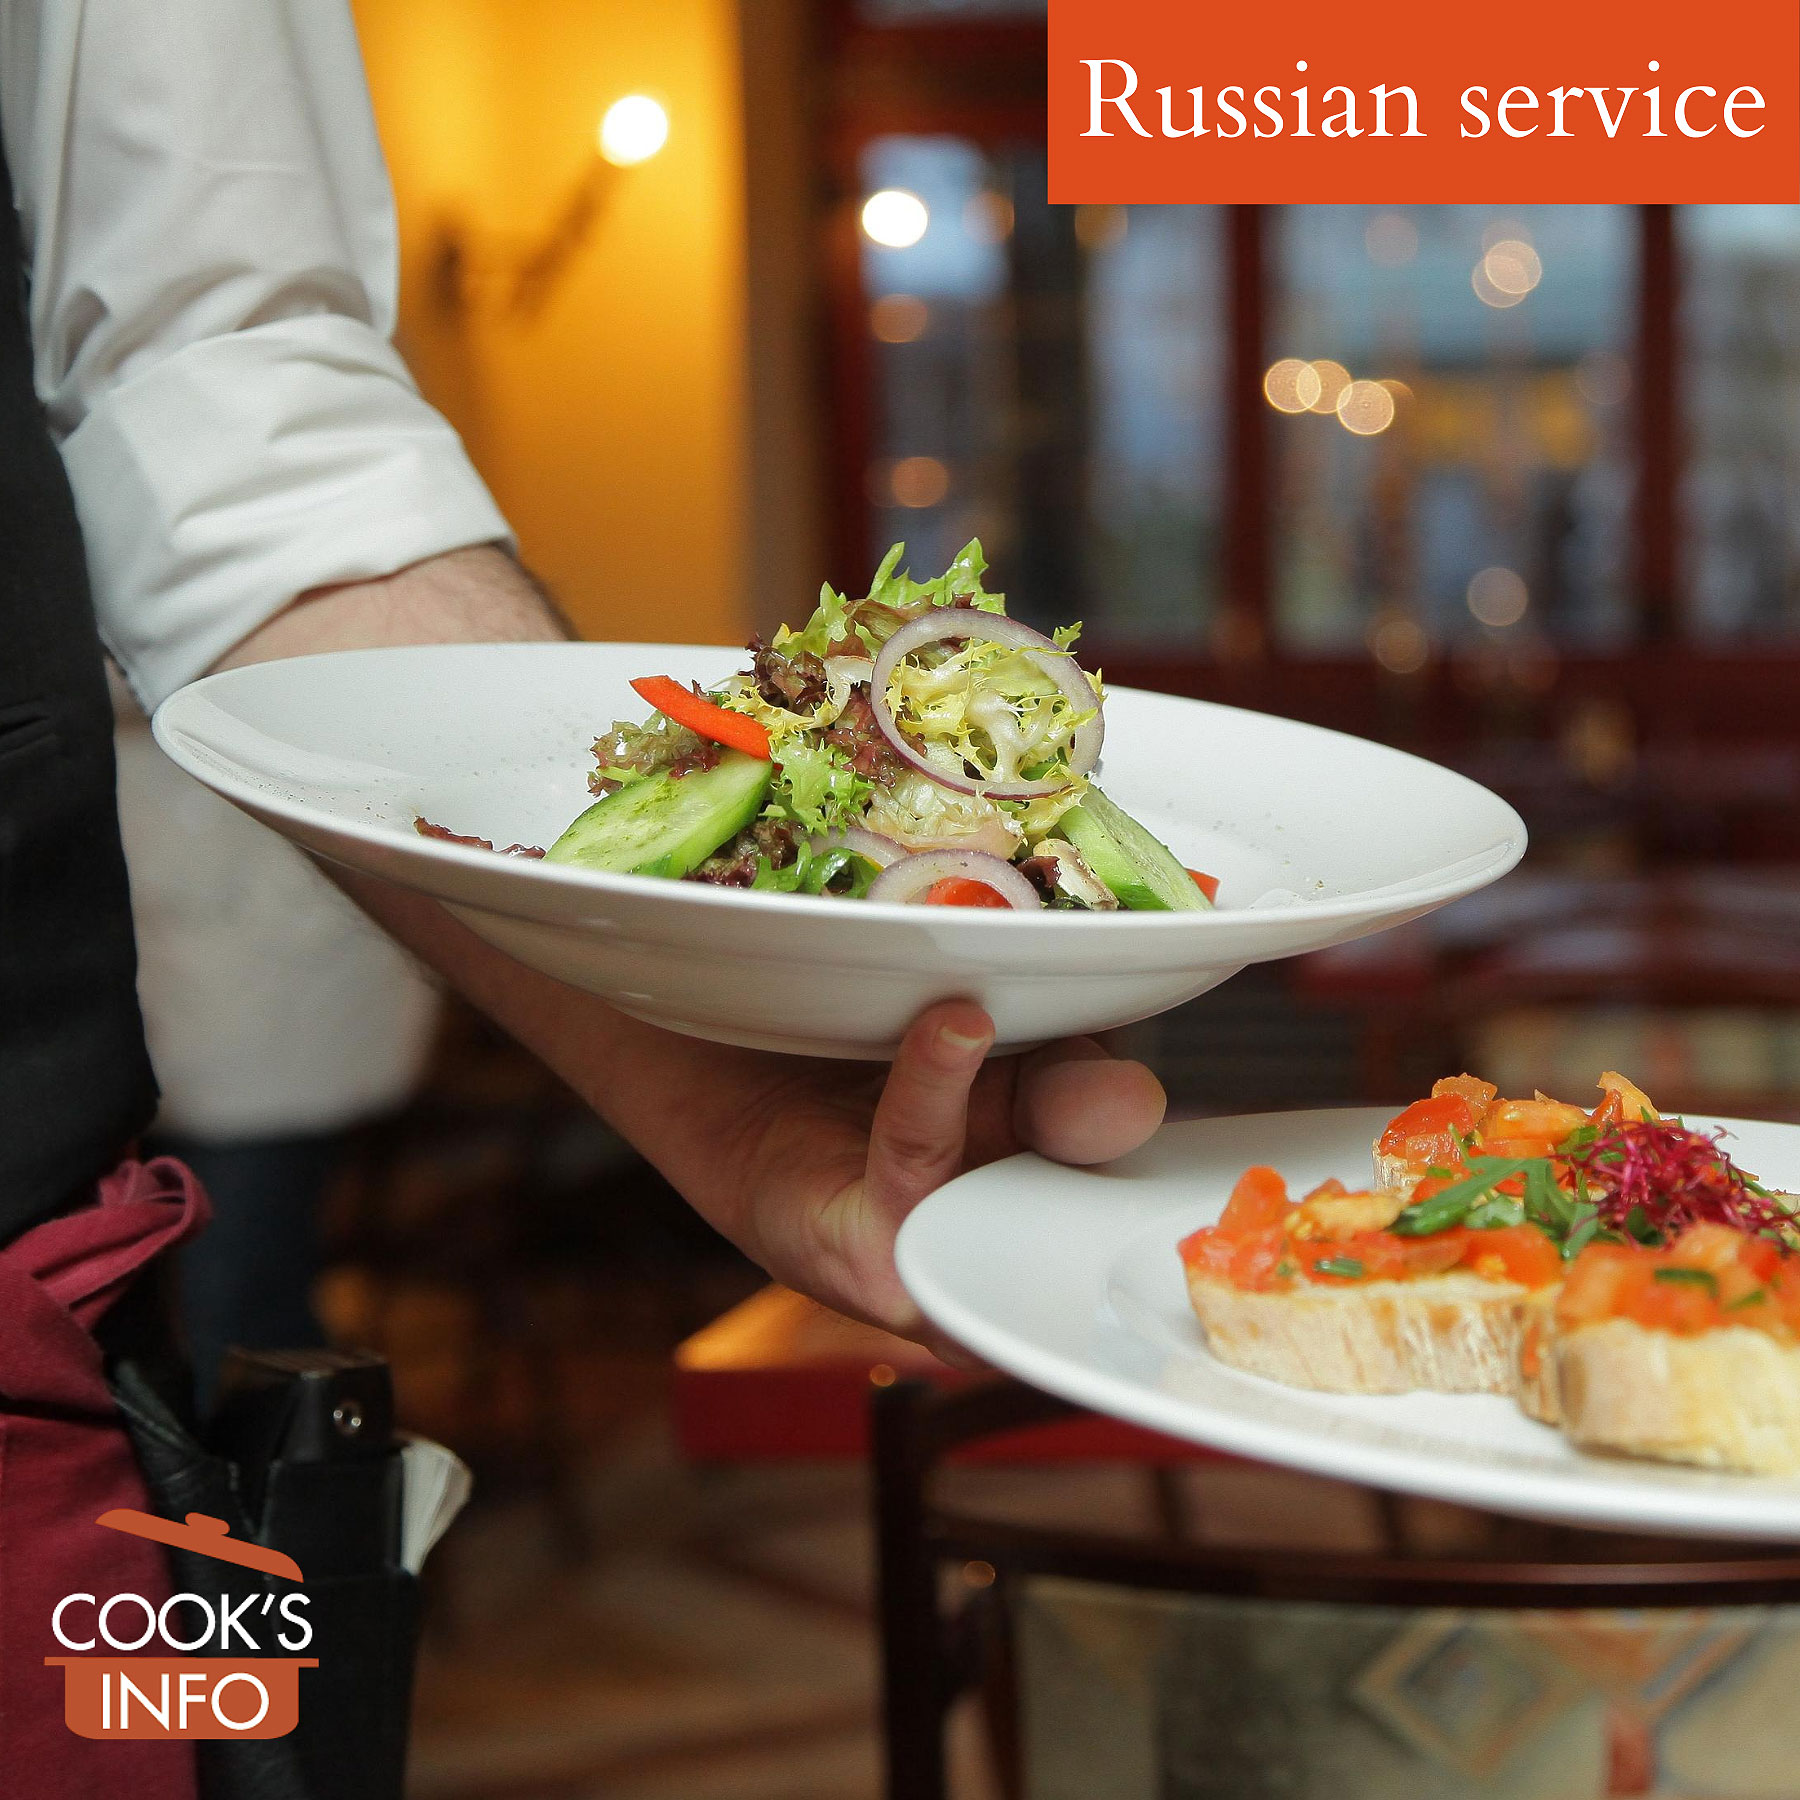 Russian service. Waiter serving already plated food